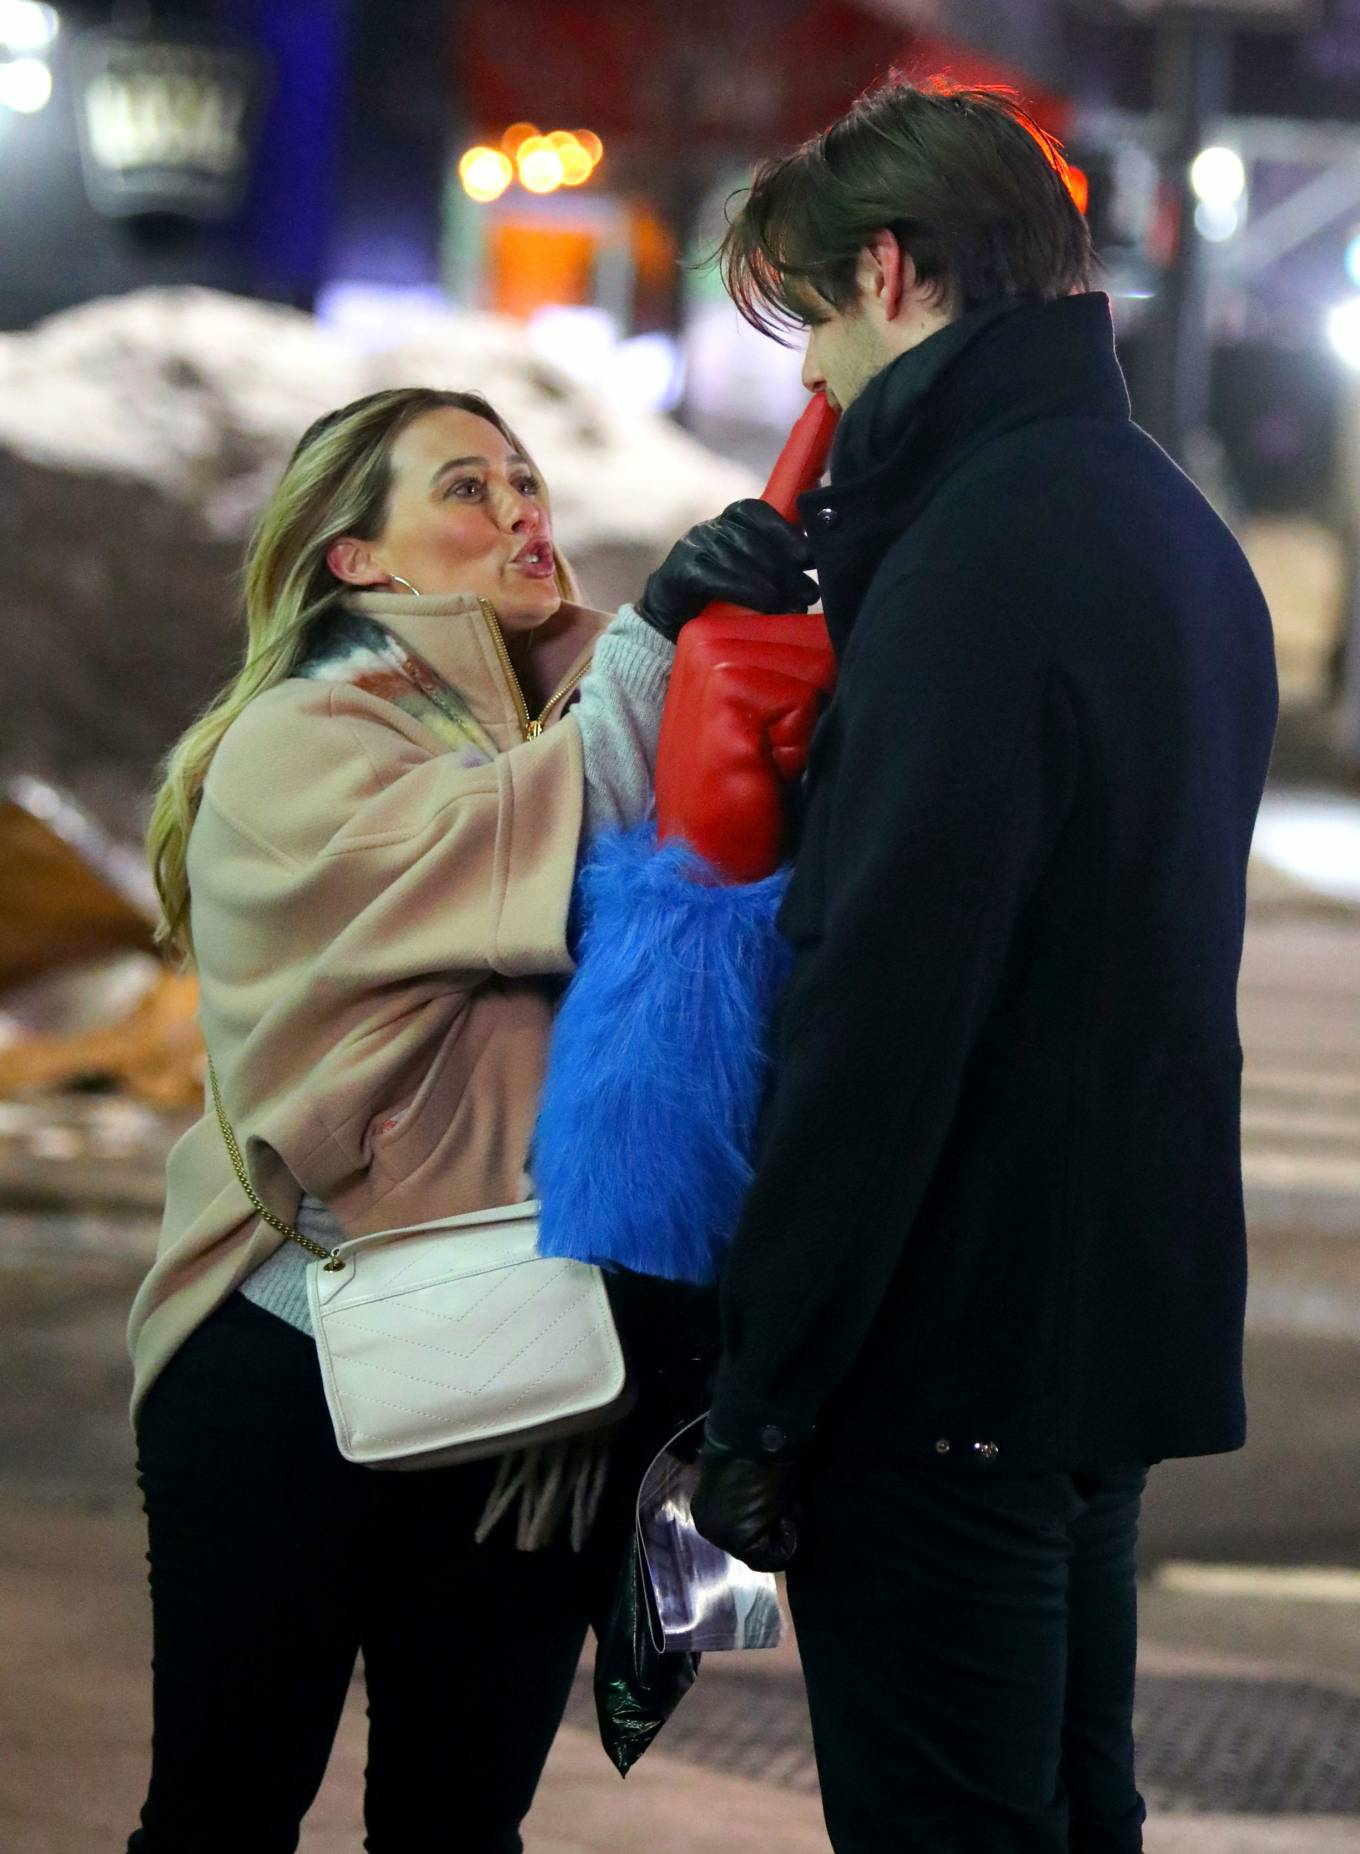 Hilary Duff - 'Younger' set filming in New York